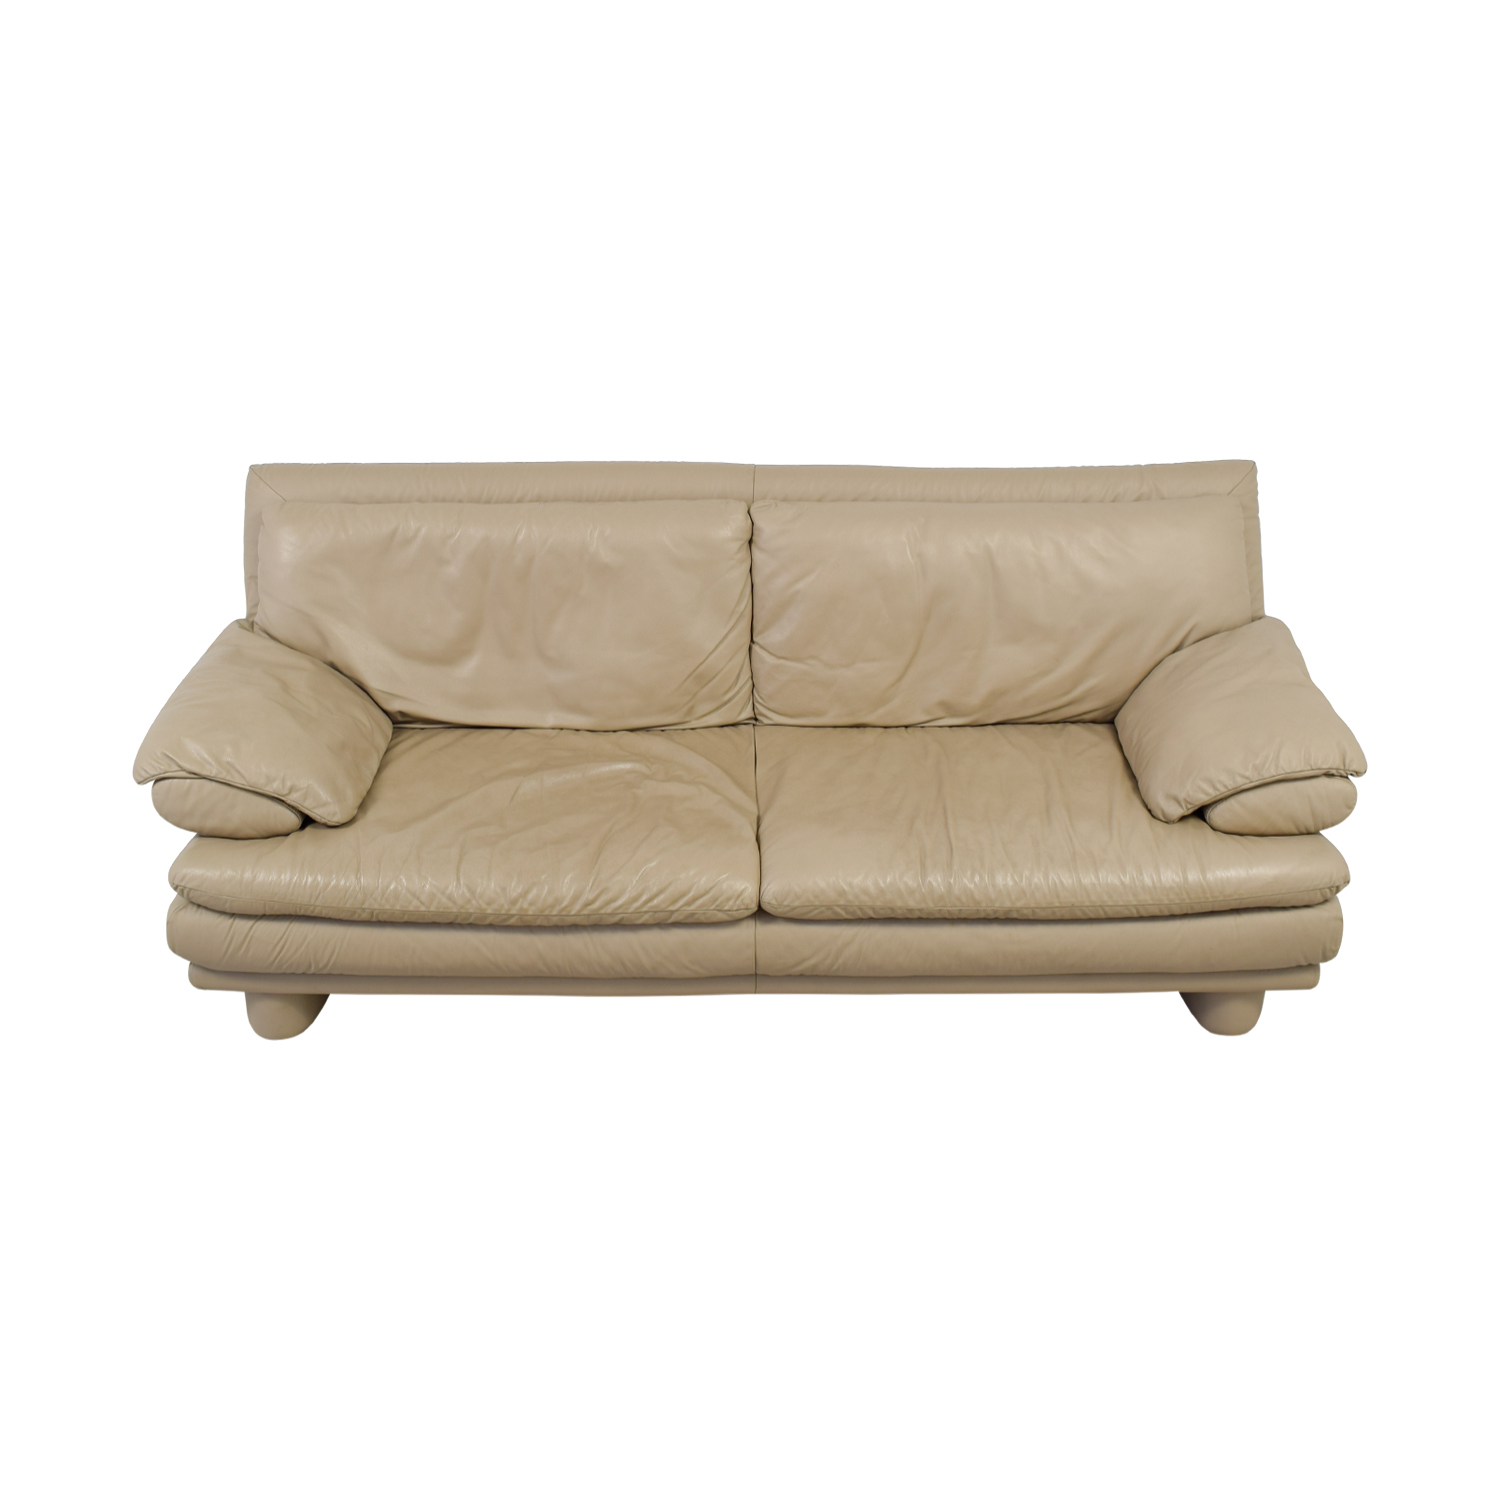 buy Maurice Villency Maurice Villency Two-Cushion Tan Leather Couch online